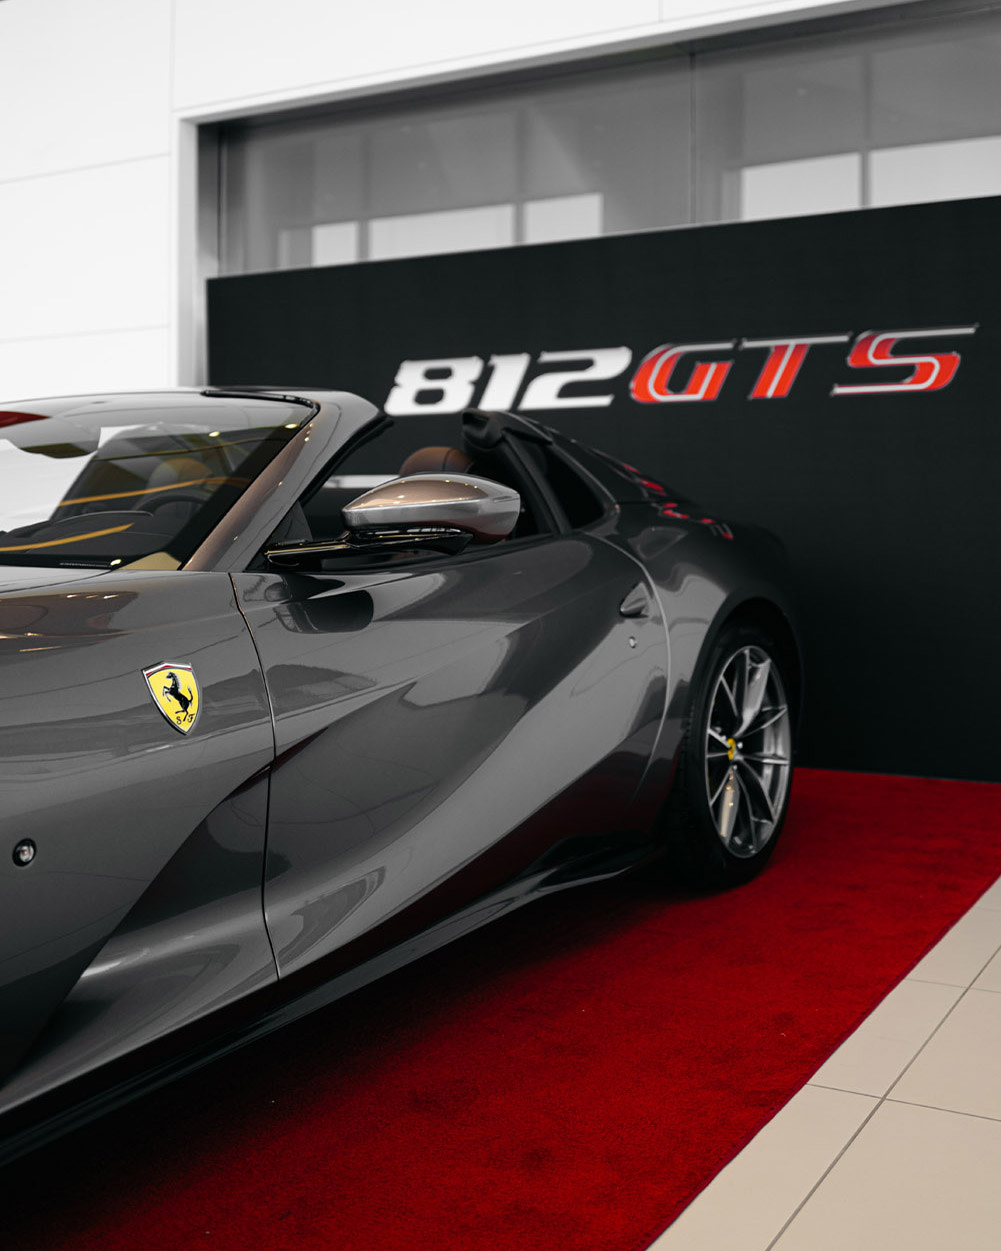 The 812 Gts Makes A Special Appearance At Ferrari South Bay Ferrari South Bay